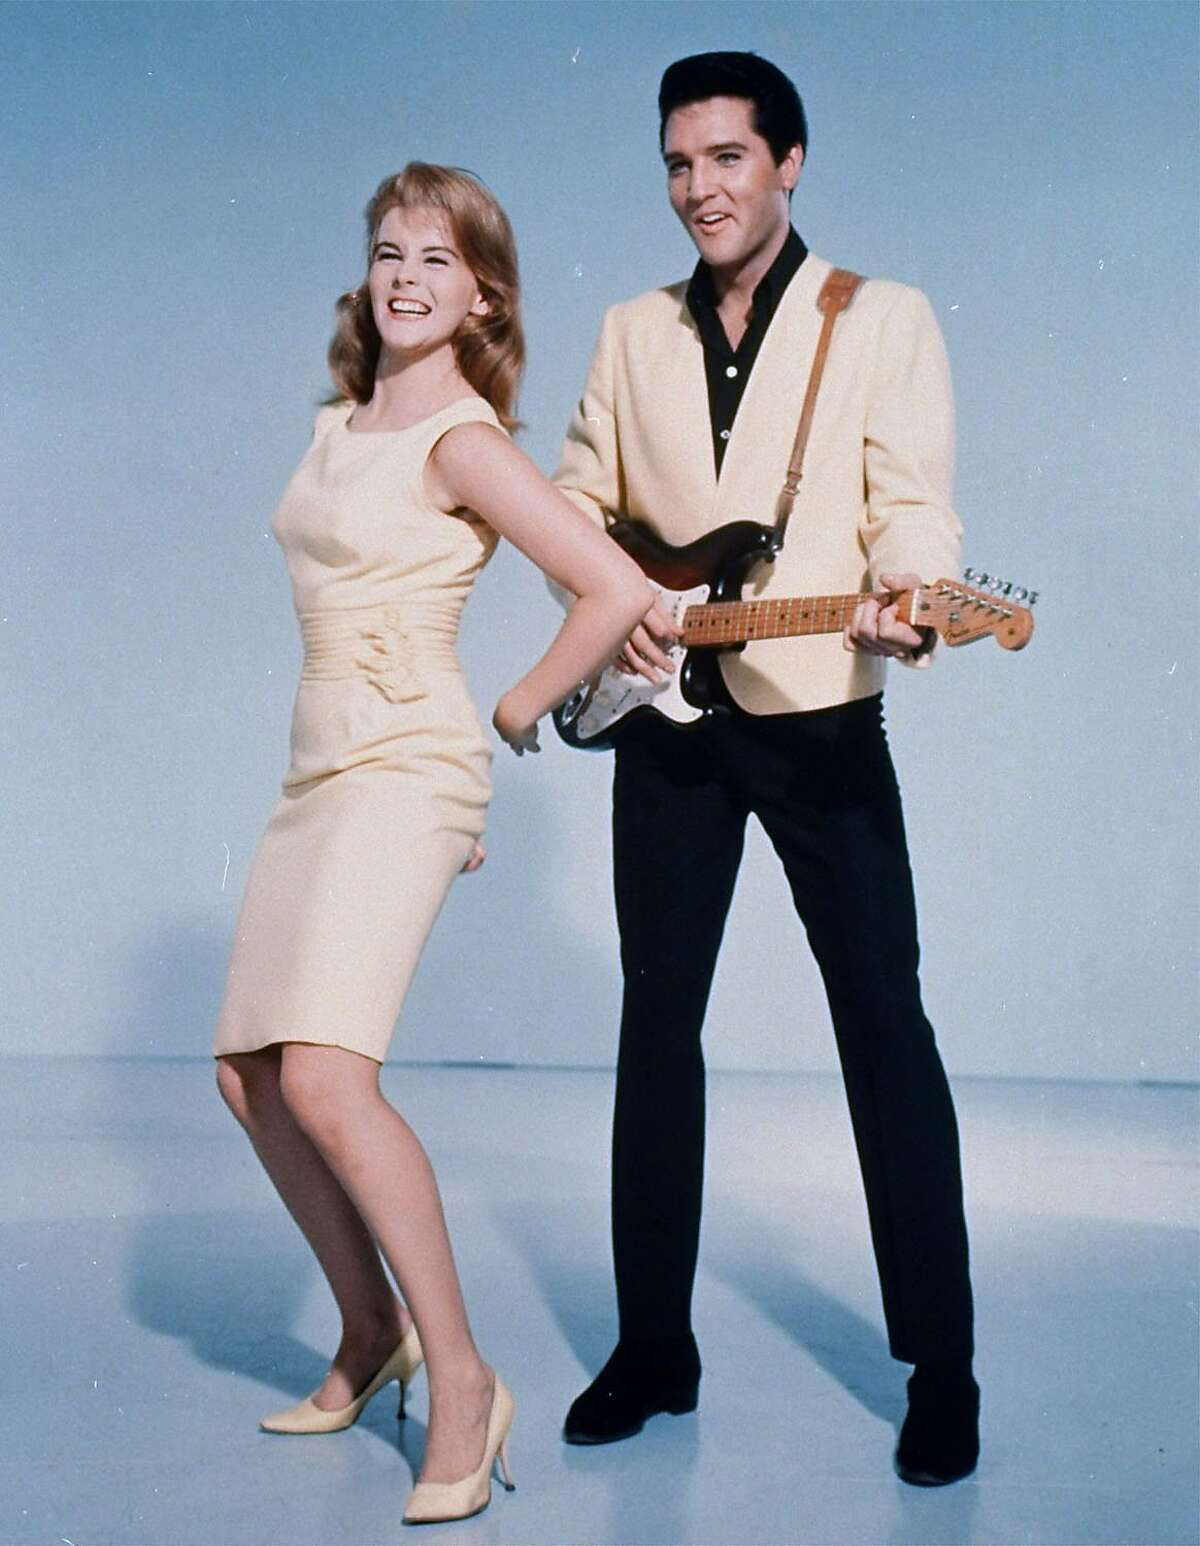 """Elvis Presley and actress Ann-Margret shown in a publicity photo for the 1964 film, """"Viva Las Vegas"""". (AP Photo)"""